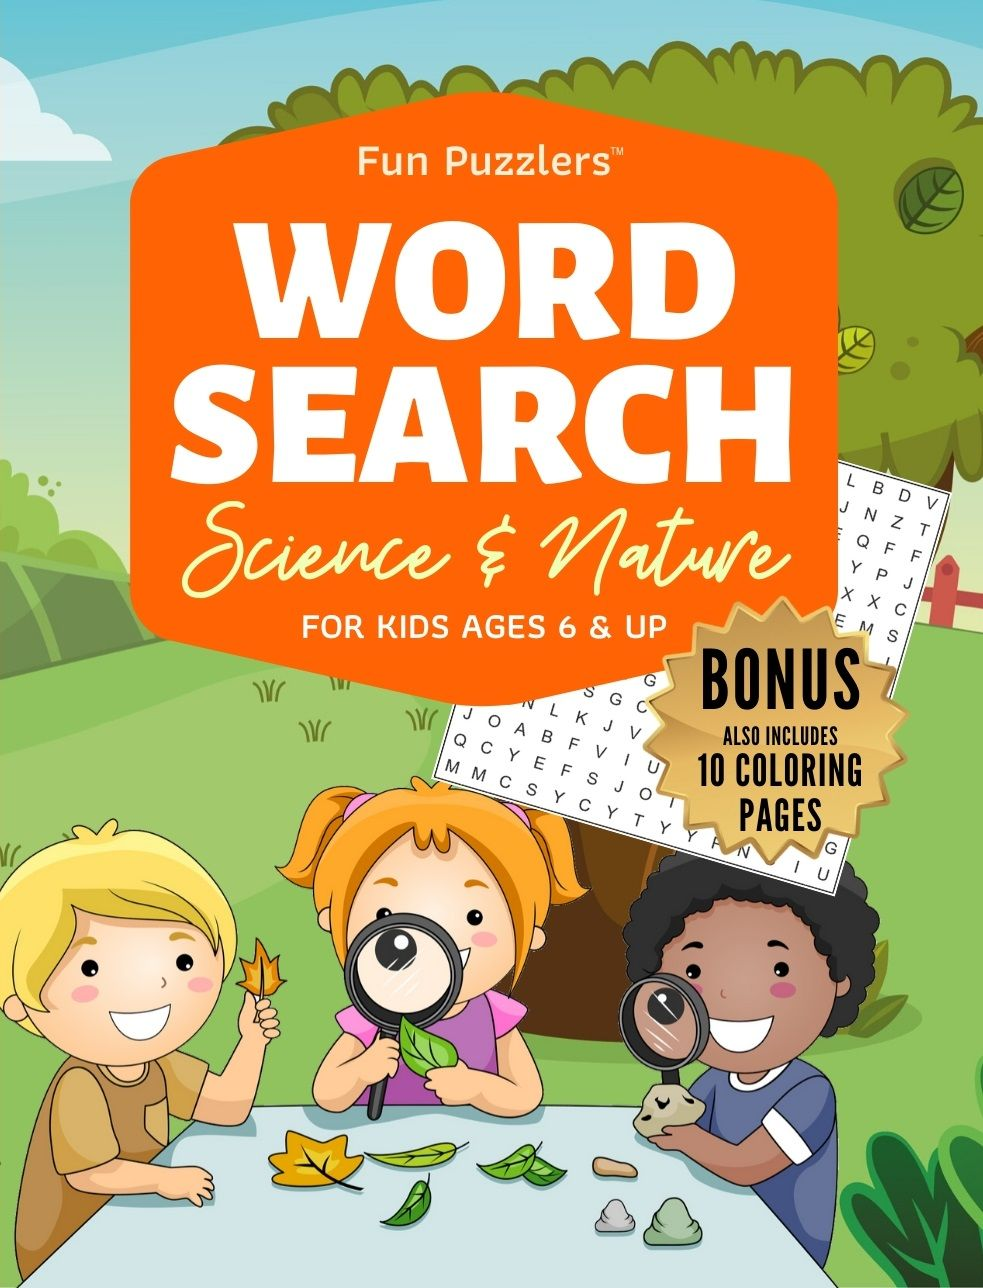 Fun puzzlerstm science nature for kids wordsearch